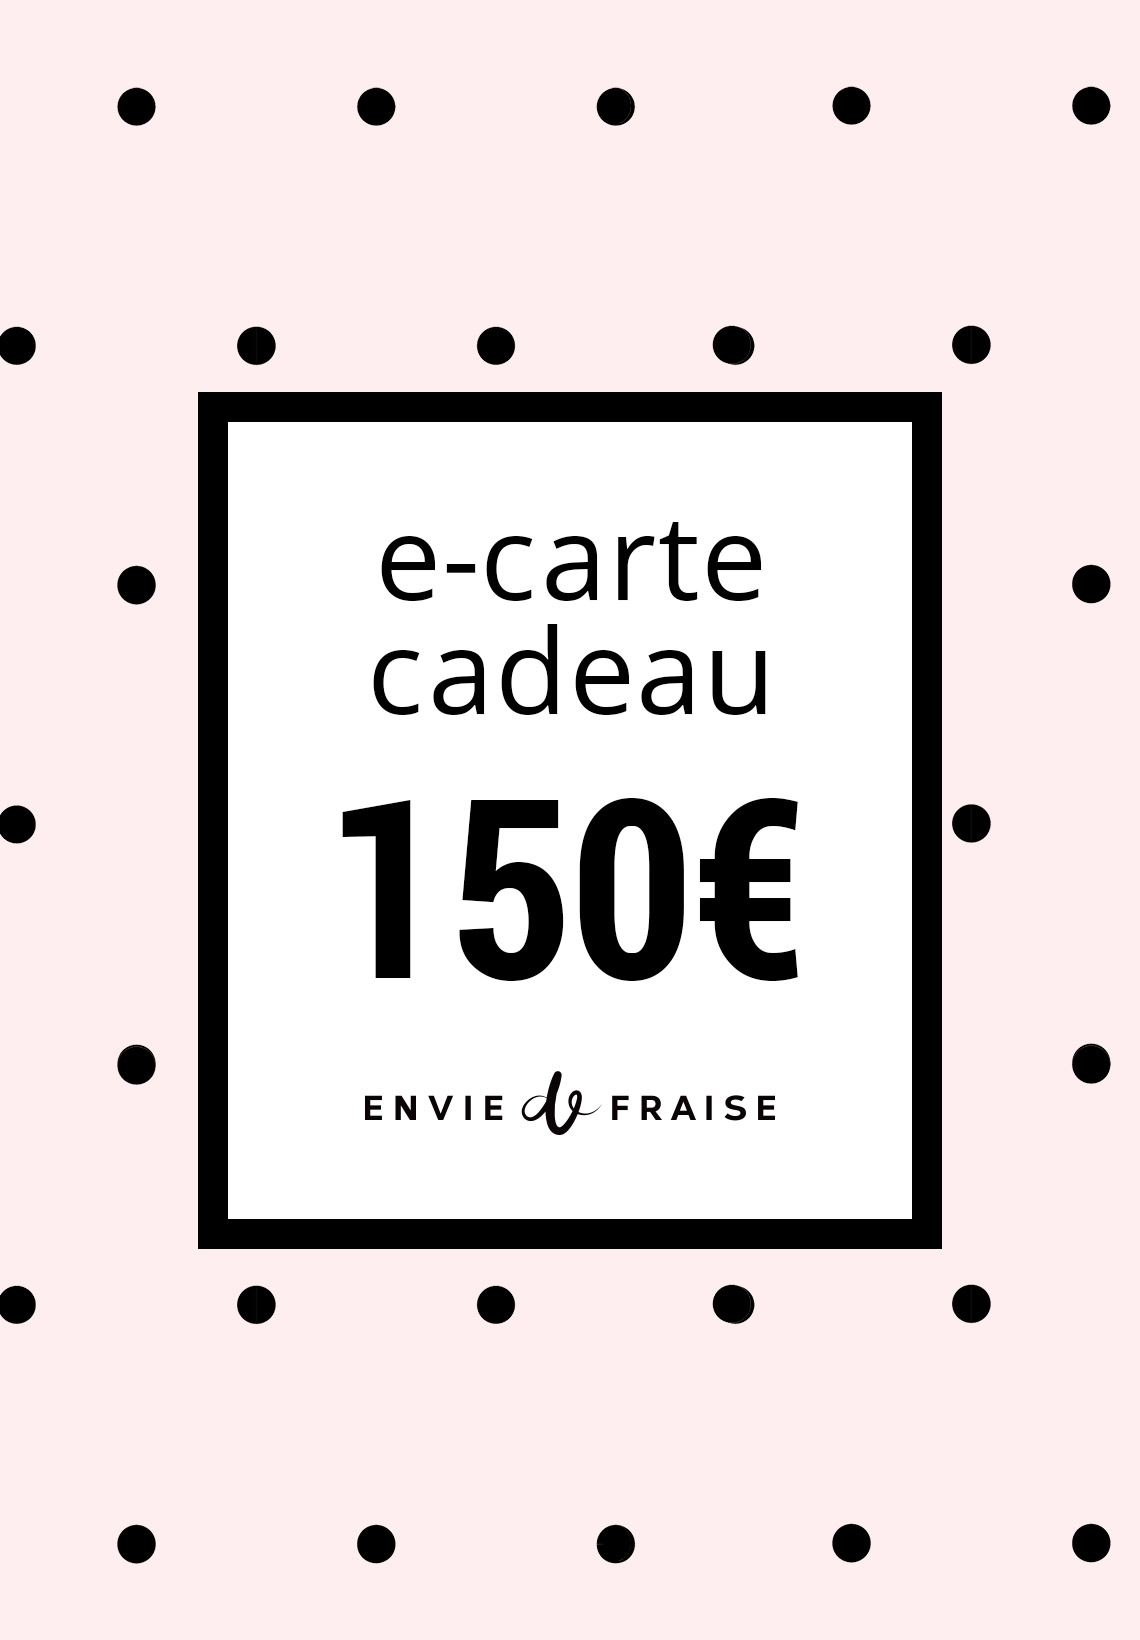 carte cadeau 150 euros sur le site envie de fraise. Black Bedroom Furniture Sets. Home Design Ideas